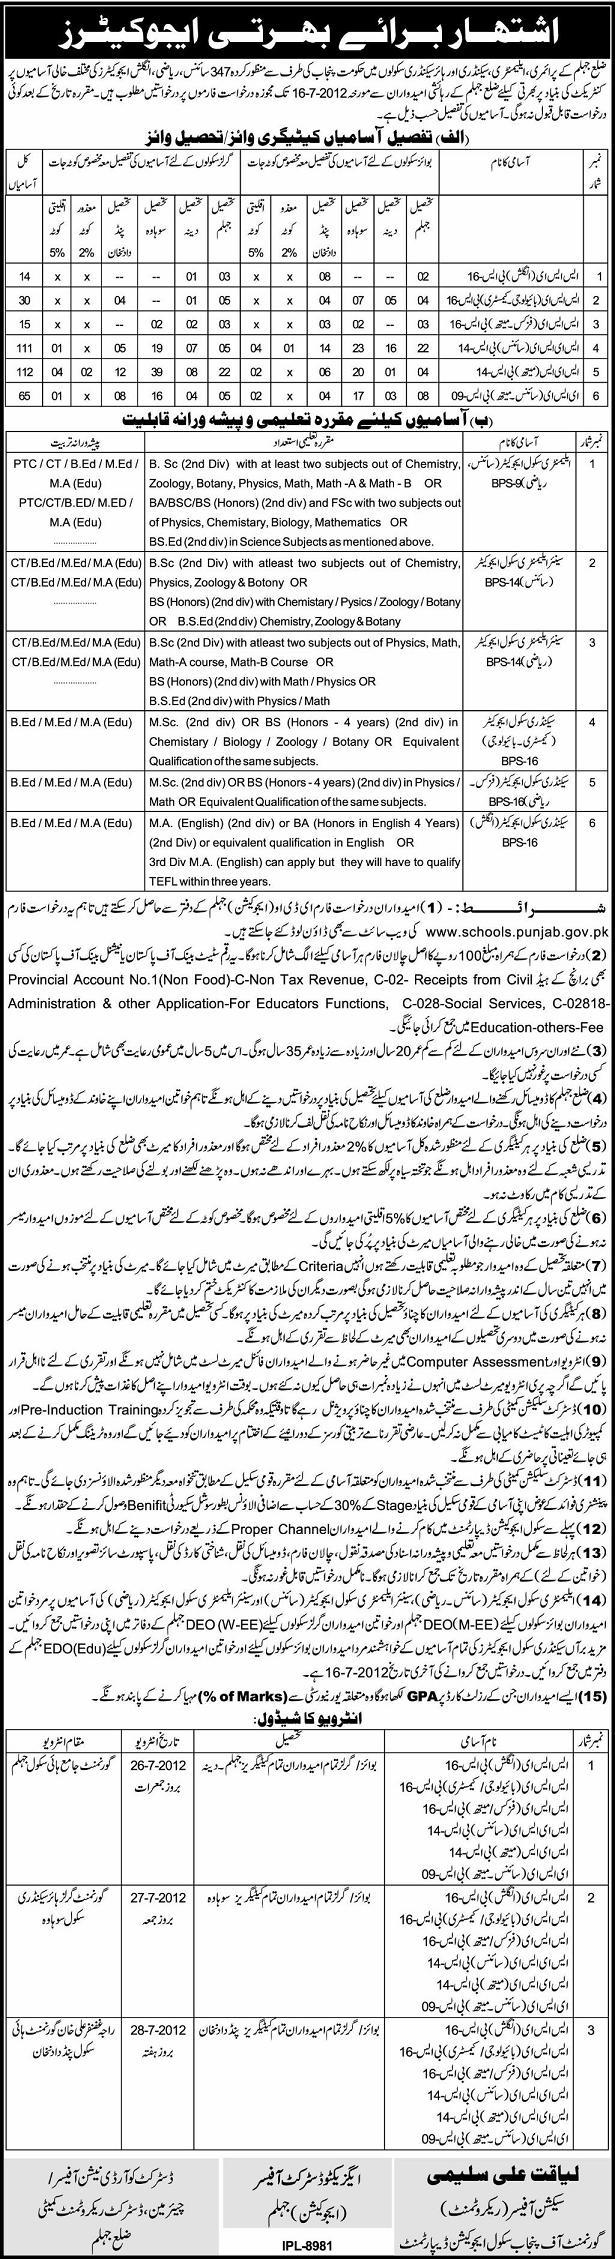 Jhelum District Educators Jobs / Posts 2012 (Last Date 16/07/2012)